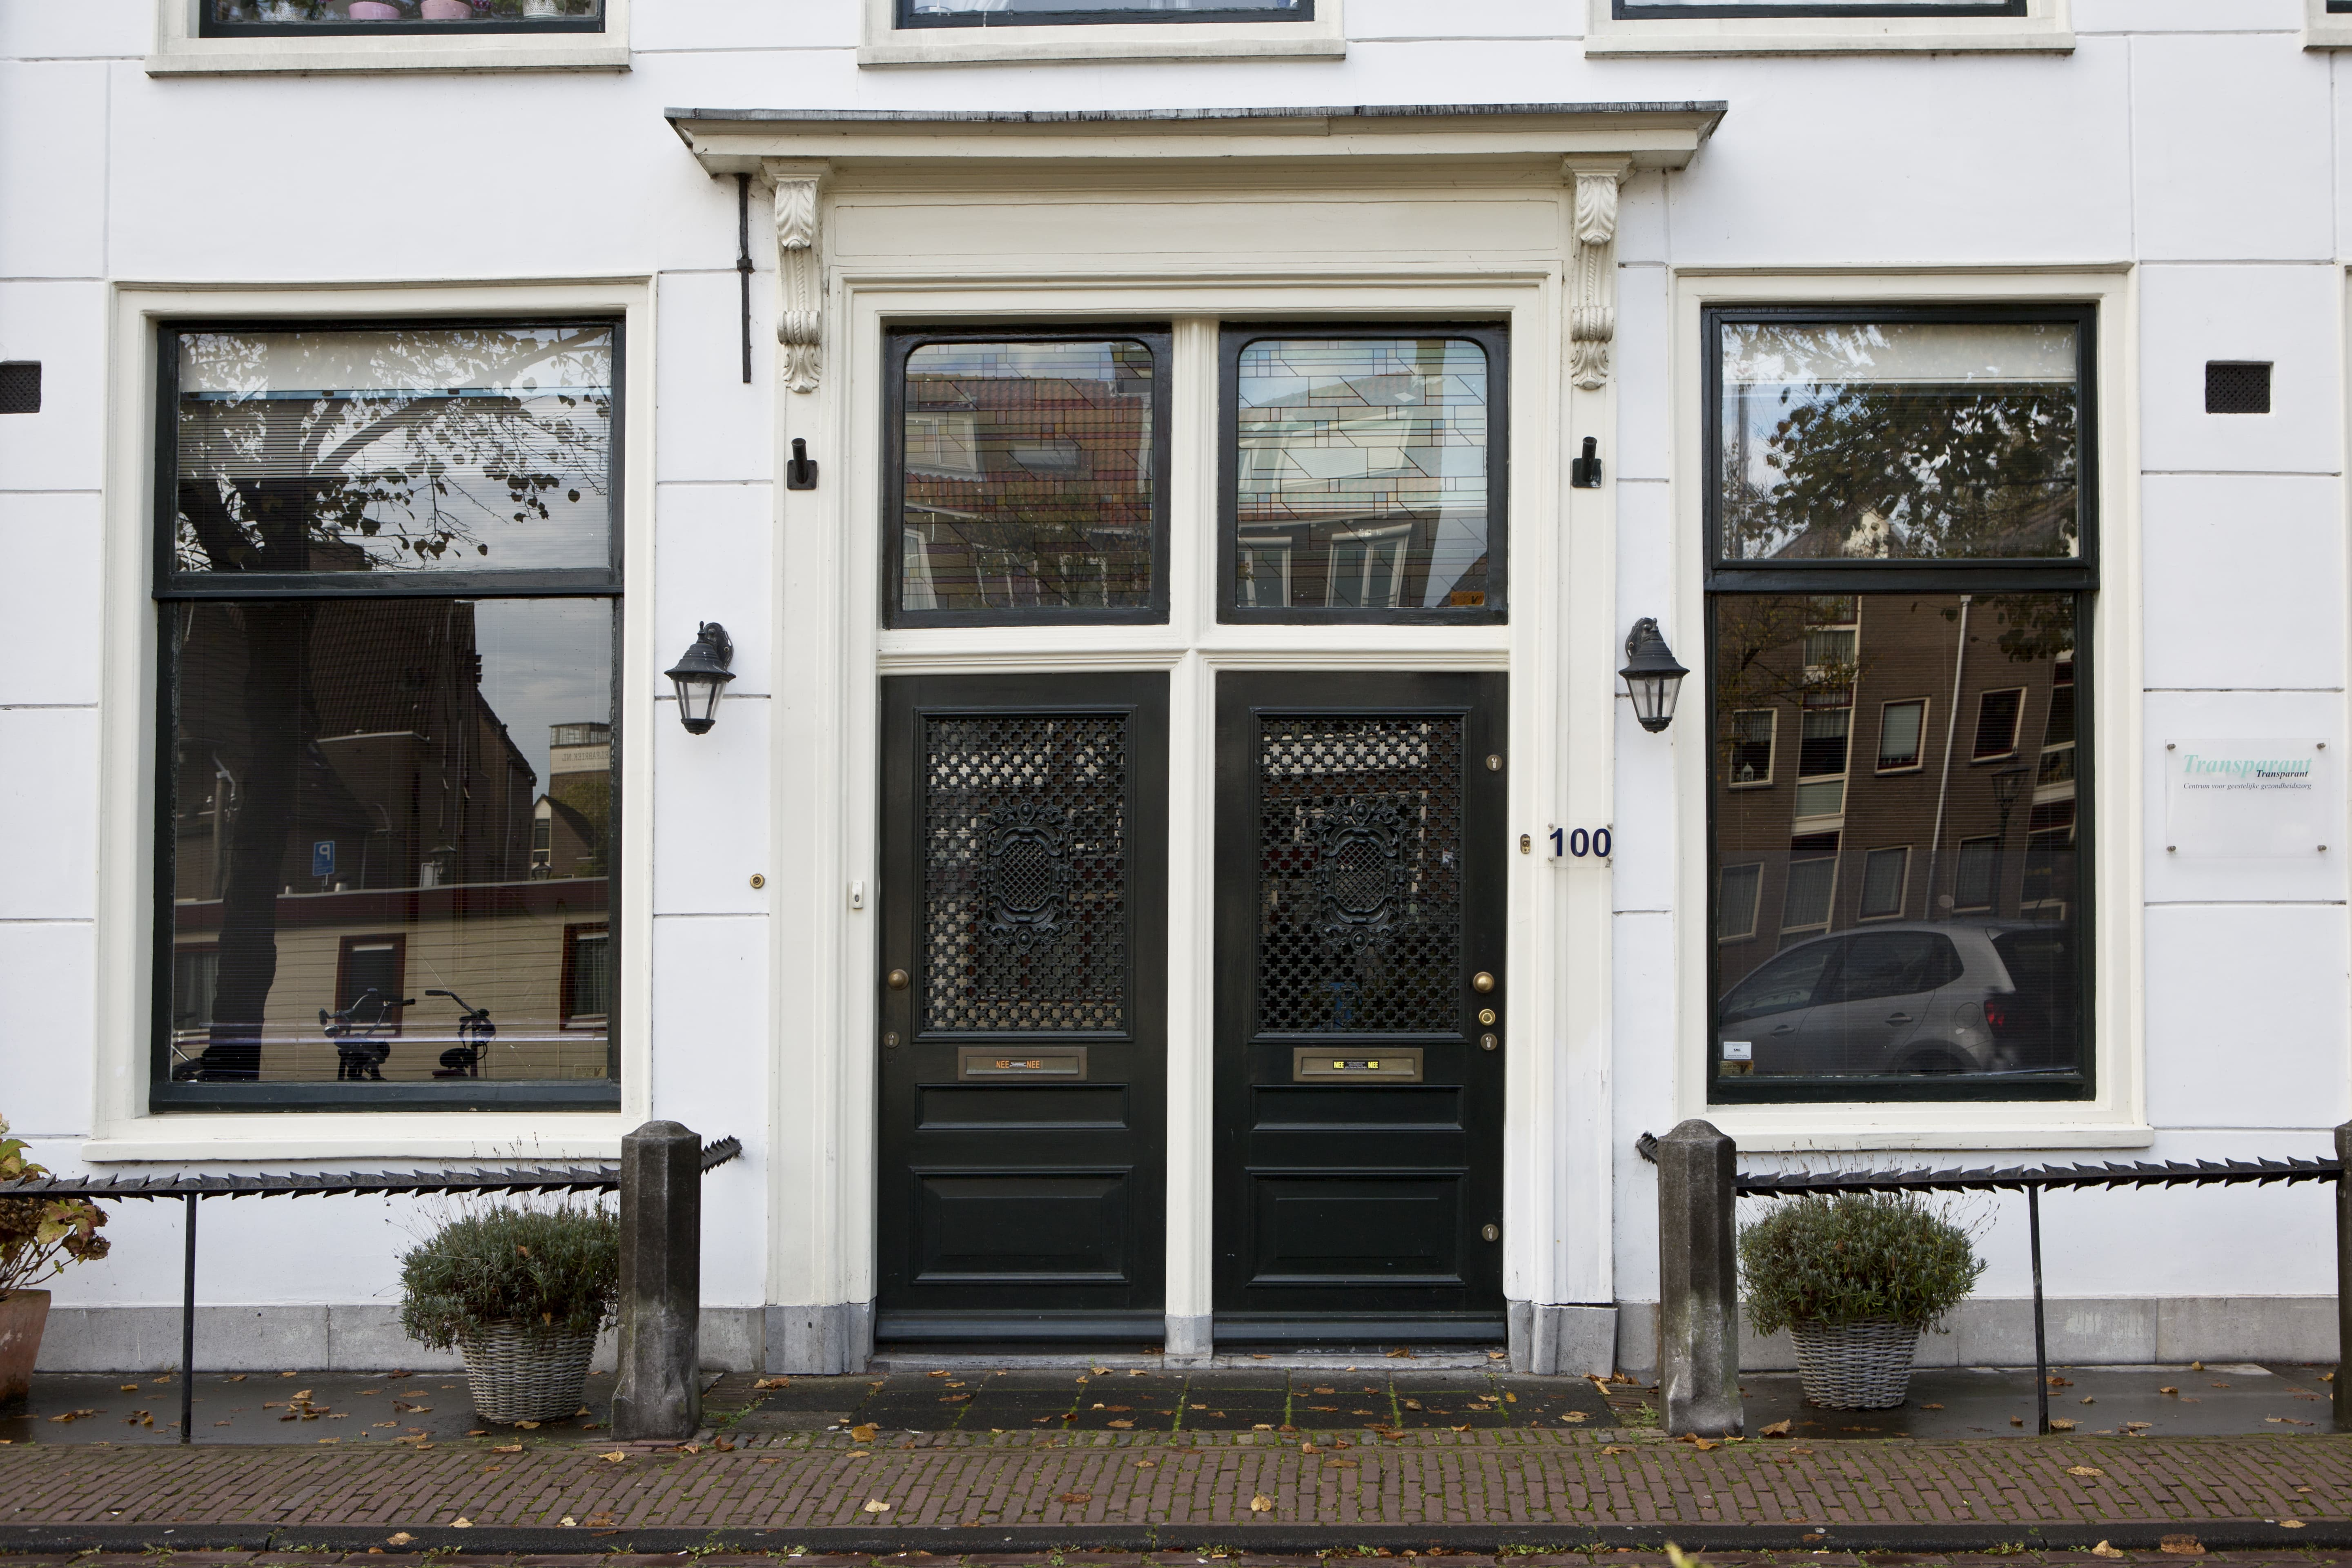 Transparant, Herengracht 100